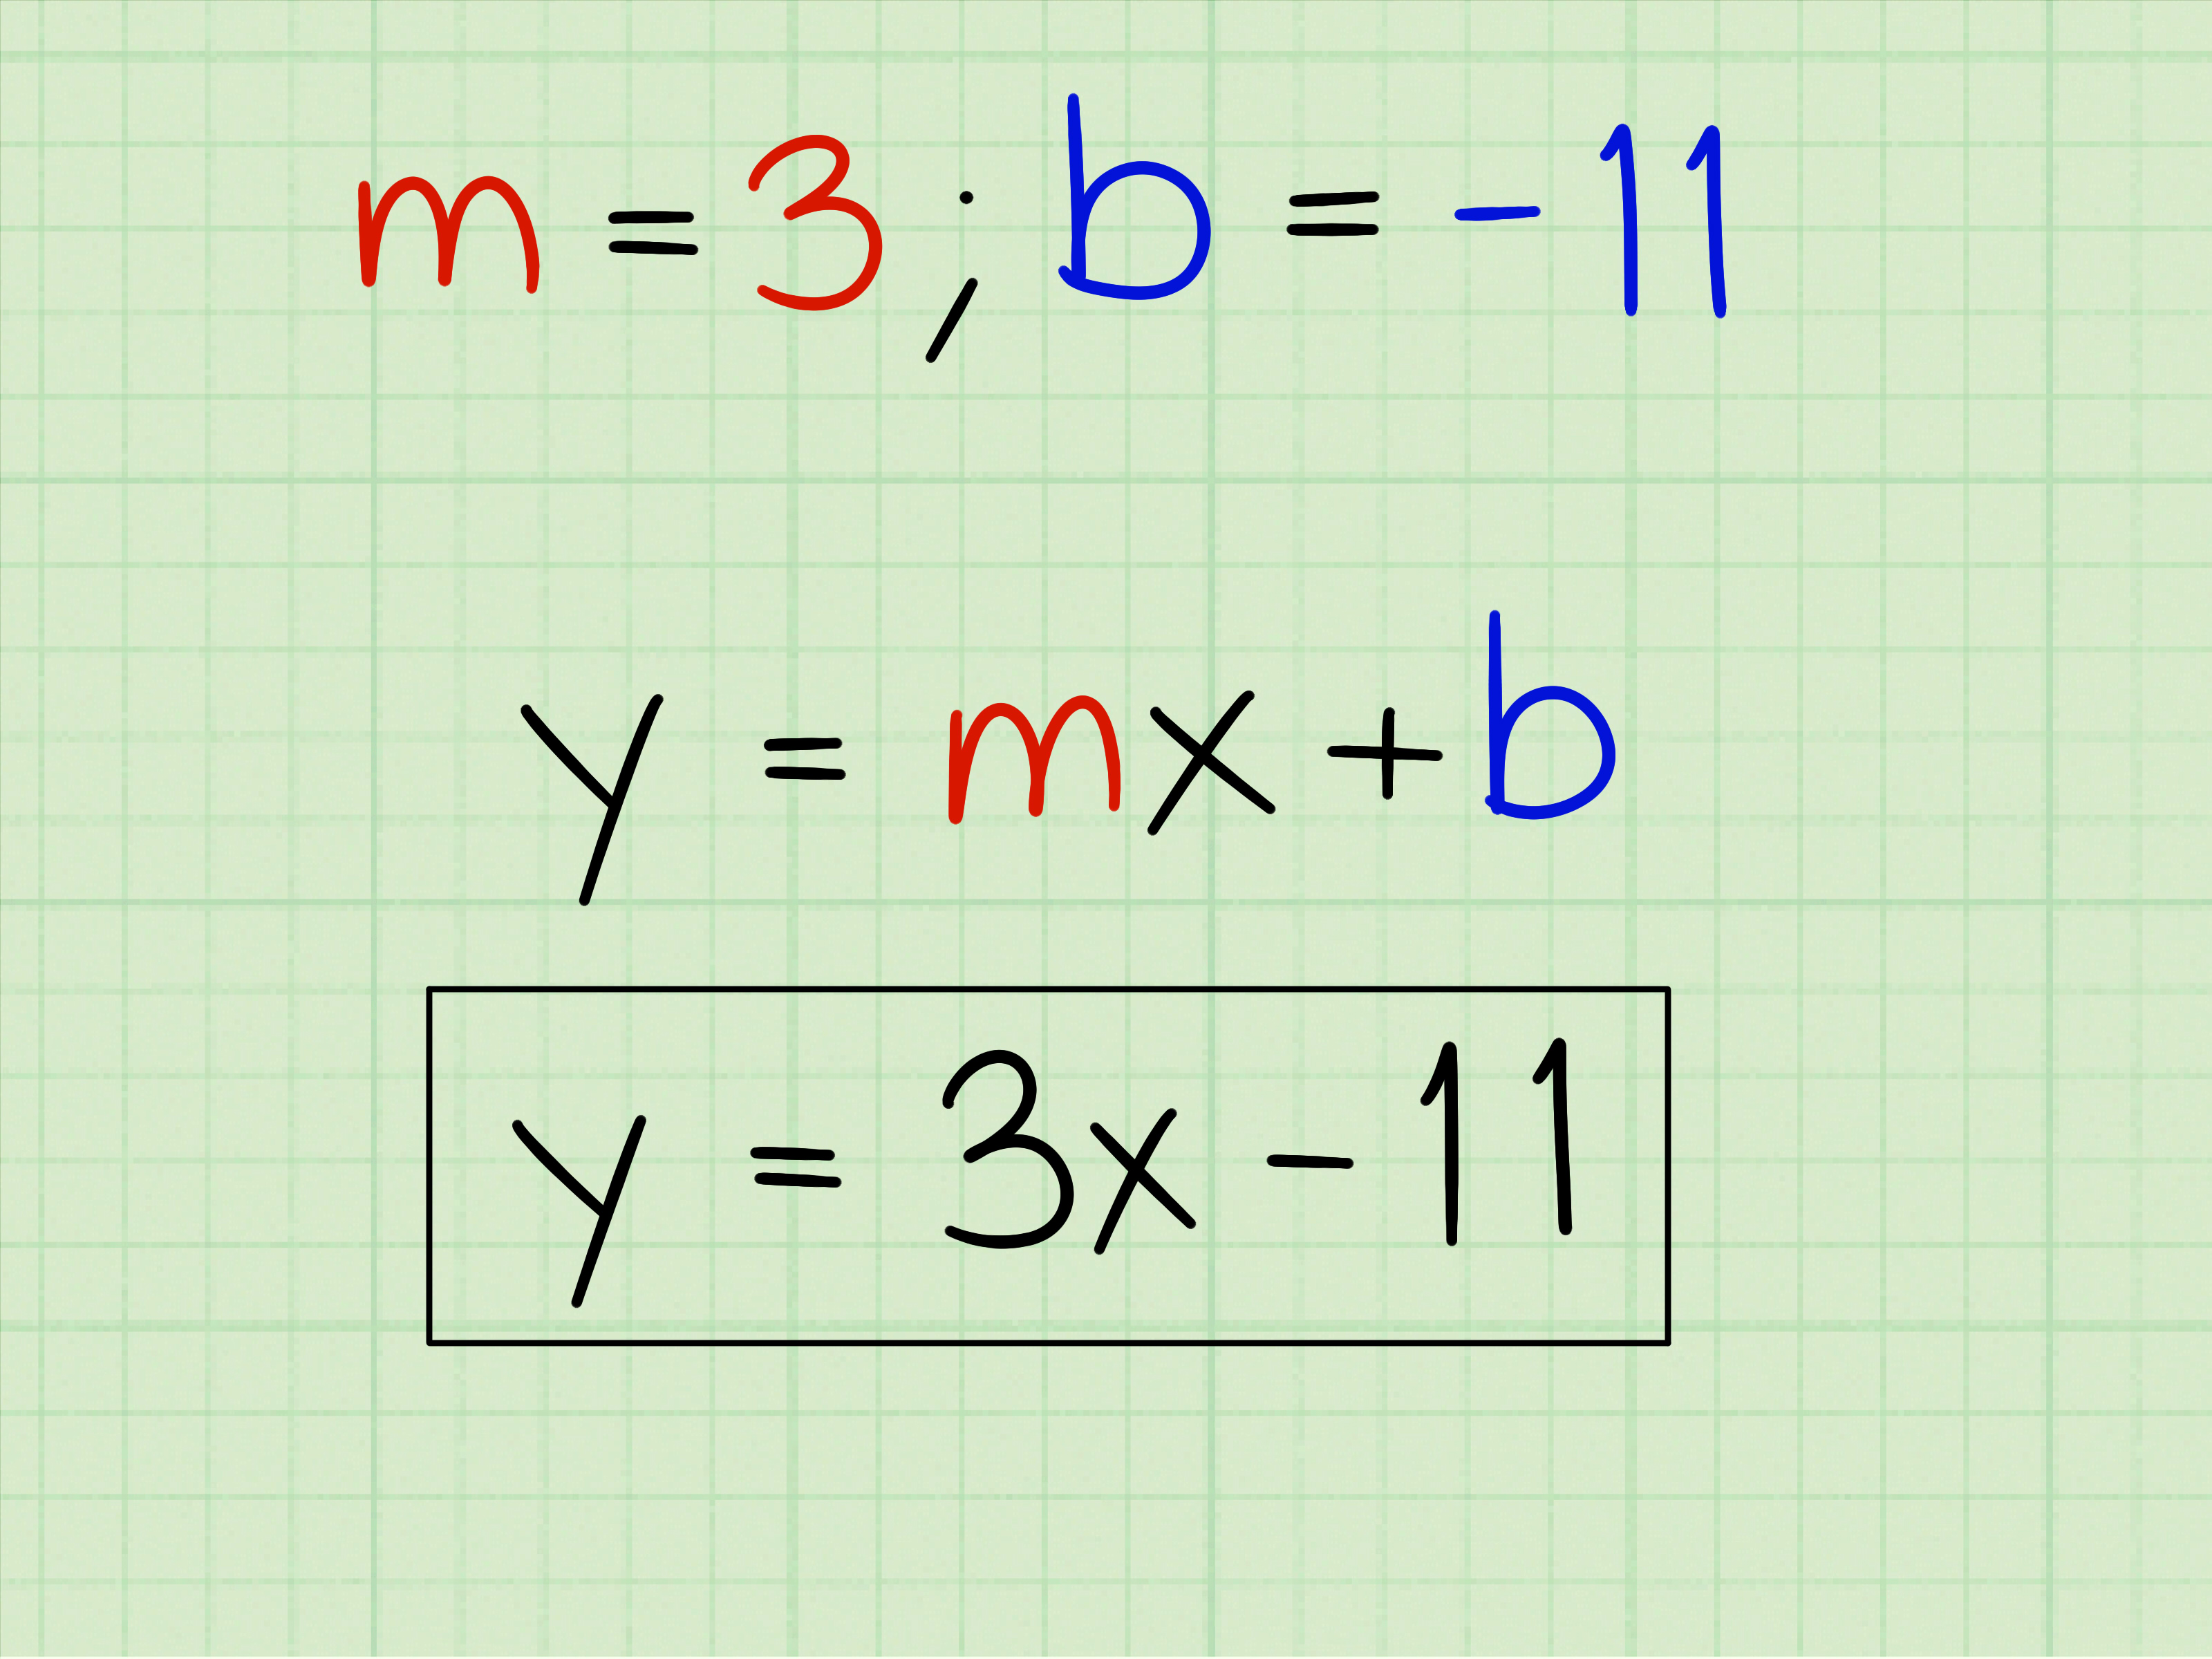 How To Write A General Linear Equation Given Two Points